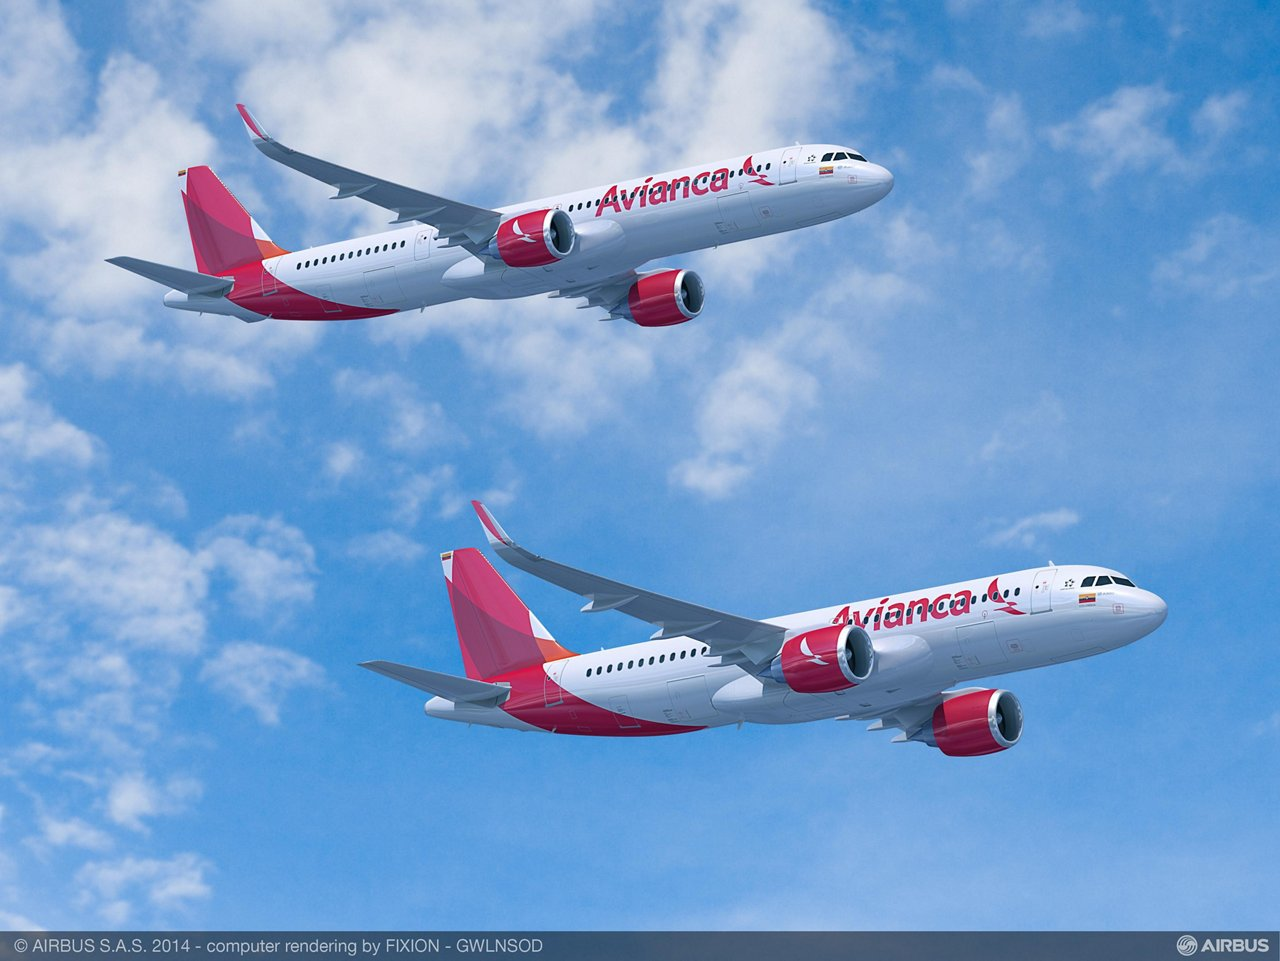 Avianca A320neo Family aircraft